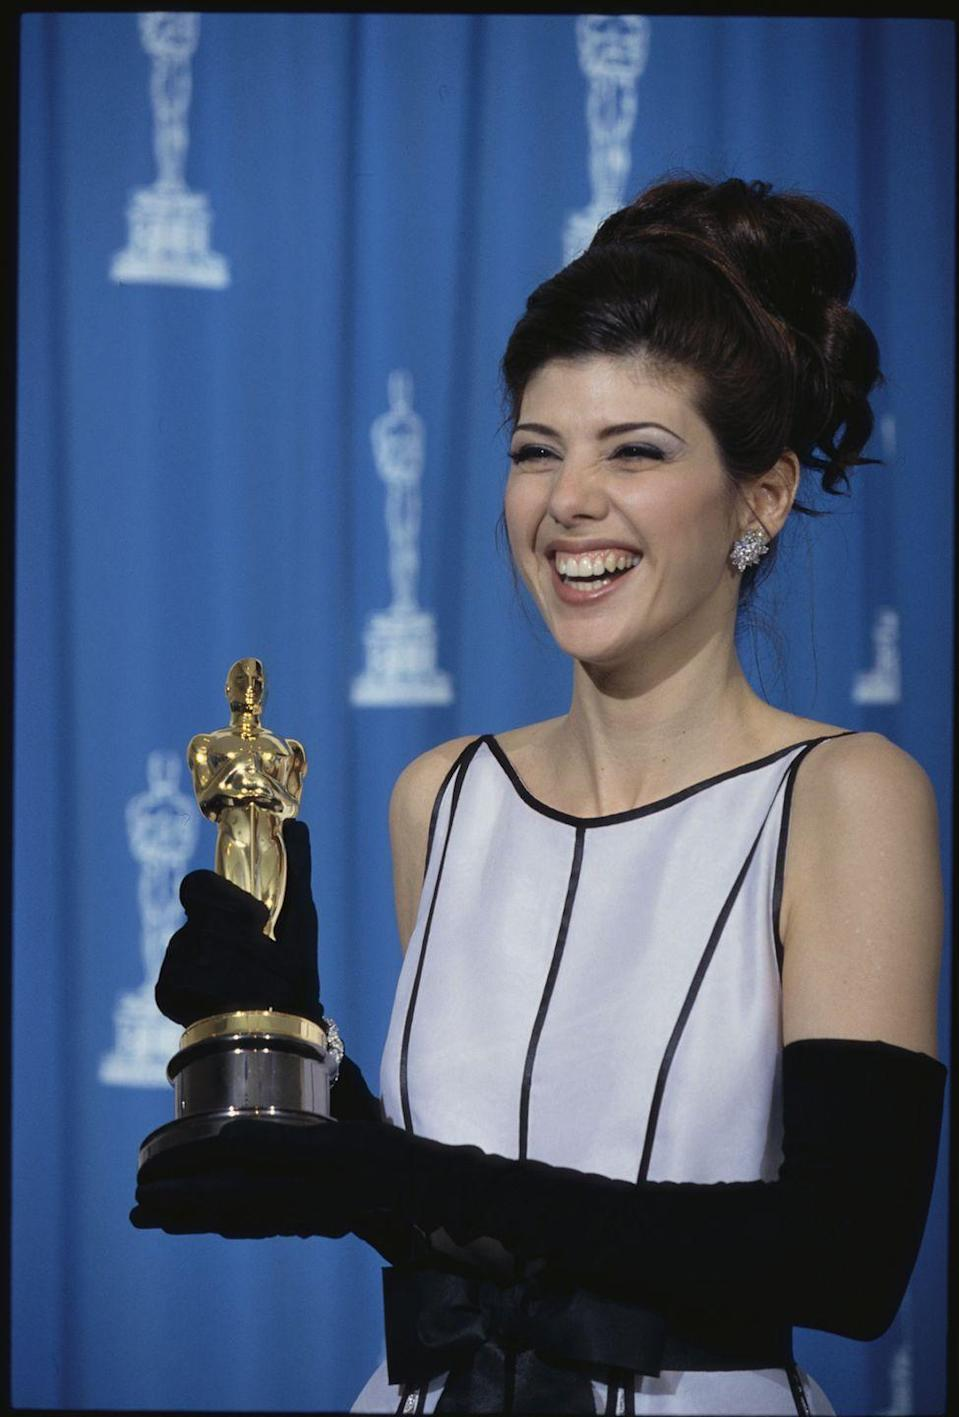 """<p>After <a href=""""https://www.youtube.com/watch?v=ej8EpWYFhnw"""" rel=""""nofollow noopener"""" target=""""_blank"""" data-ylk=""""slk:Marisa Tomei won Best Supporting Actress"""" class=""""link rapid-noclick-resp"""">Marisa Tomei won Best Supporting Actress</a> for her role in <em><a href=""""https://www.amazon.com/dp/B00517EQSY?ref=sr_1_1_acs_kn_imdb_pa_dp&qid=1547582882&sr=1-1-acs&autoplay=0&tag=syn-yahoo-20&ascsubtag=%5Bartid%7C10055.g.5148%5Bsrc%7Cyahoo-us"""" rel=""""nofollow noopener"""" target=""""_blank"""" data-ylk=""""slk:My Cousin Vinny"""" class=""""link rapid-noclick-resp"""">My Cousin Vinny</a>,</em> <span class=""""redactor-invisible-space"""">people began to suspect there had been some mistake, since she had beat out several famous veteran actresses. Most seemed to think that presenter Jack Palance read the wrong name, or got confused, and the Academy just didn't want to cause an embarrassing scene. But <a href=""""https://www.snopes.com/movies/actors/tomei.asp"""" rel=""""nofollow noopener"""" target=""""_blank"""" data-ylk=""""slk:that theory has been thoroughly debunked"""" class=""""link rapid-noclick-resp"""">that theory has been thoroughly debunked</a>, and as we've seen from the <a href=""""https://www.goodhousekeeping.com/life/entertainment/news/a43038/best-picture-moonlight-la-la-land-oscars-mix-up/"""" rel=""""nofollow noopener"""" target=""""_blank"""" data-ylk=""""slk:Best Picture fiasco in 2017"""" class=""""link rapid-noclick-resp"""">Best Picture fiasco in 2017</a>, the Academy <em>will </em><span class=""""redactor-invisible-space"""">step in if a mistake is made. </span></span></p>"""